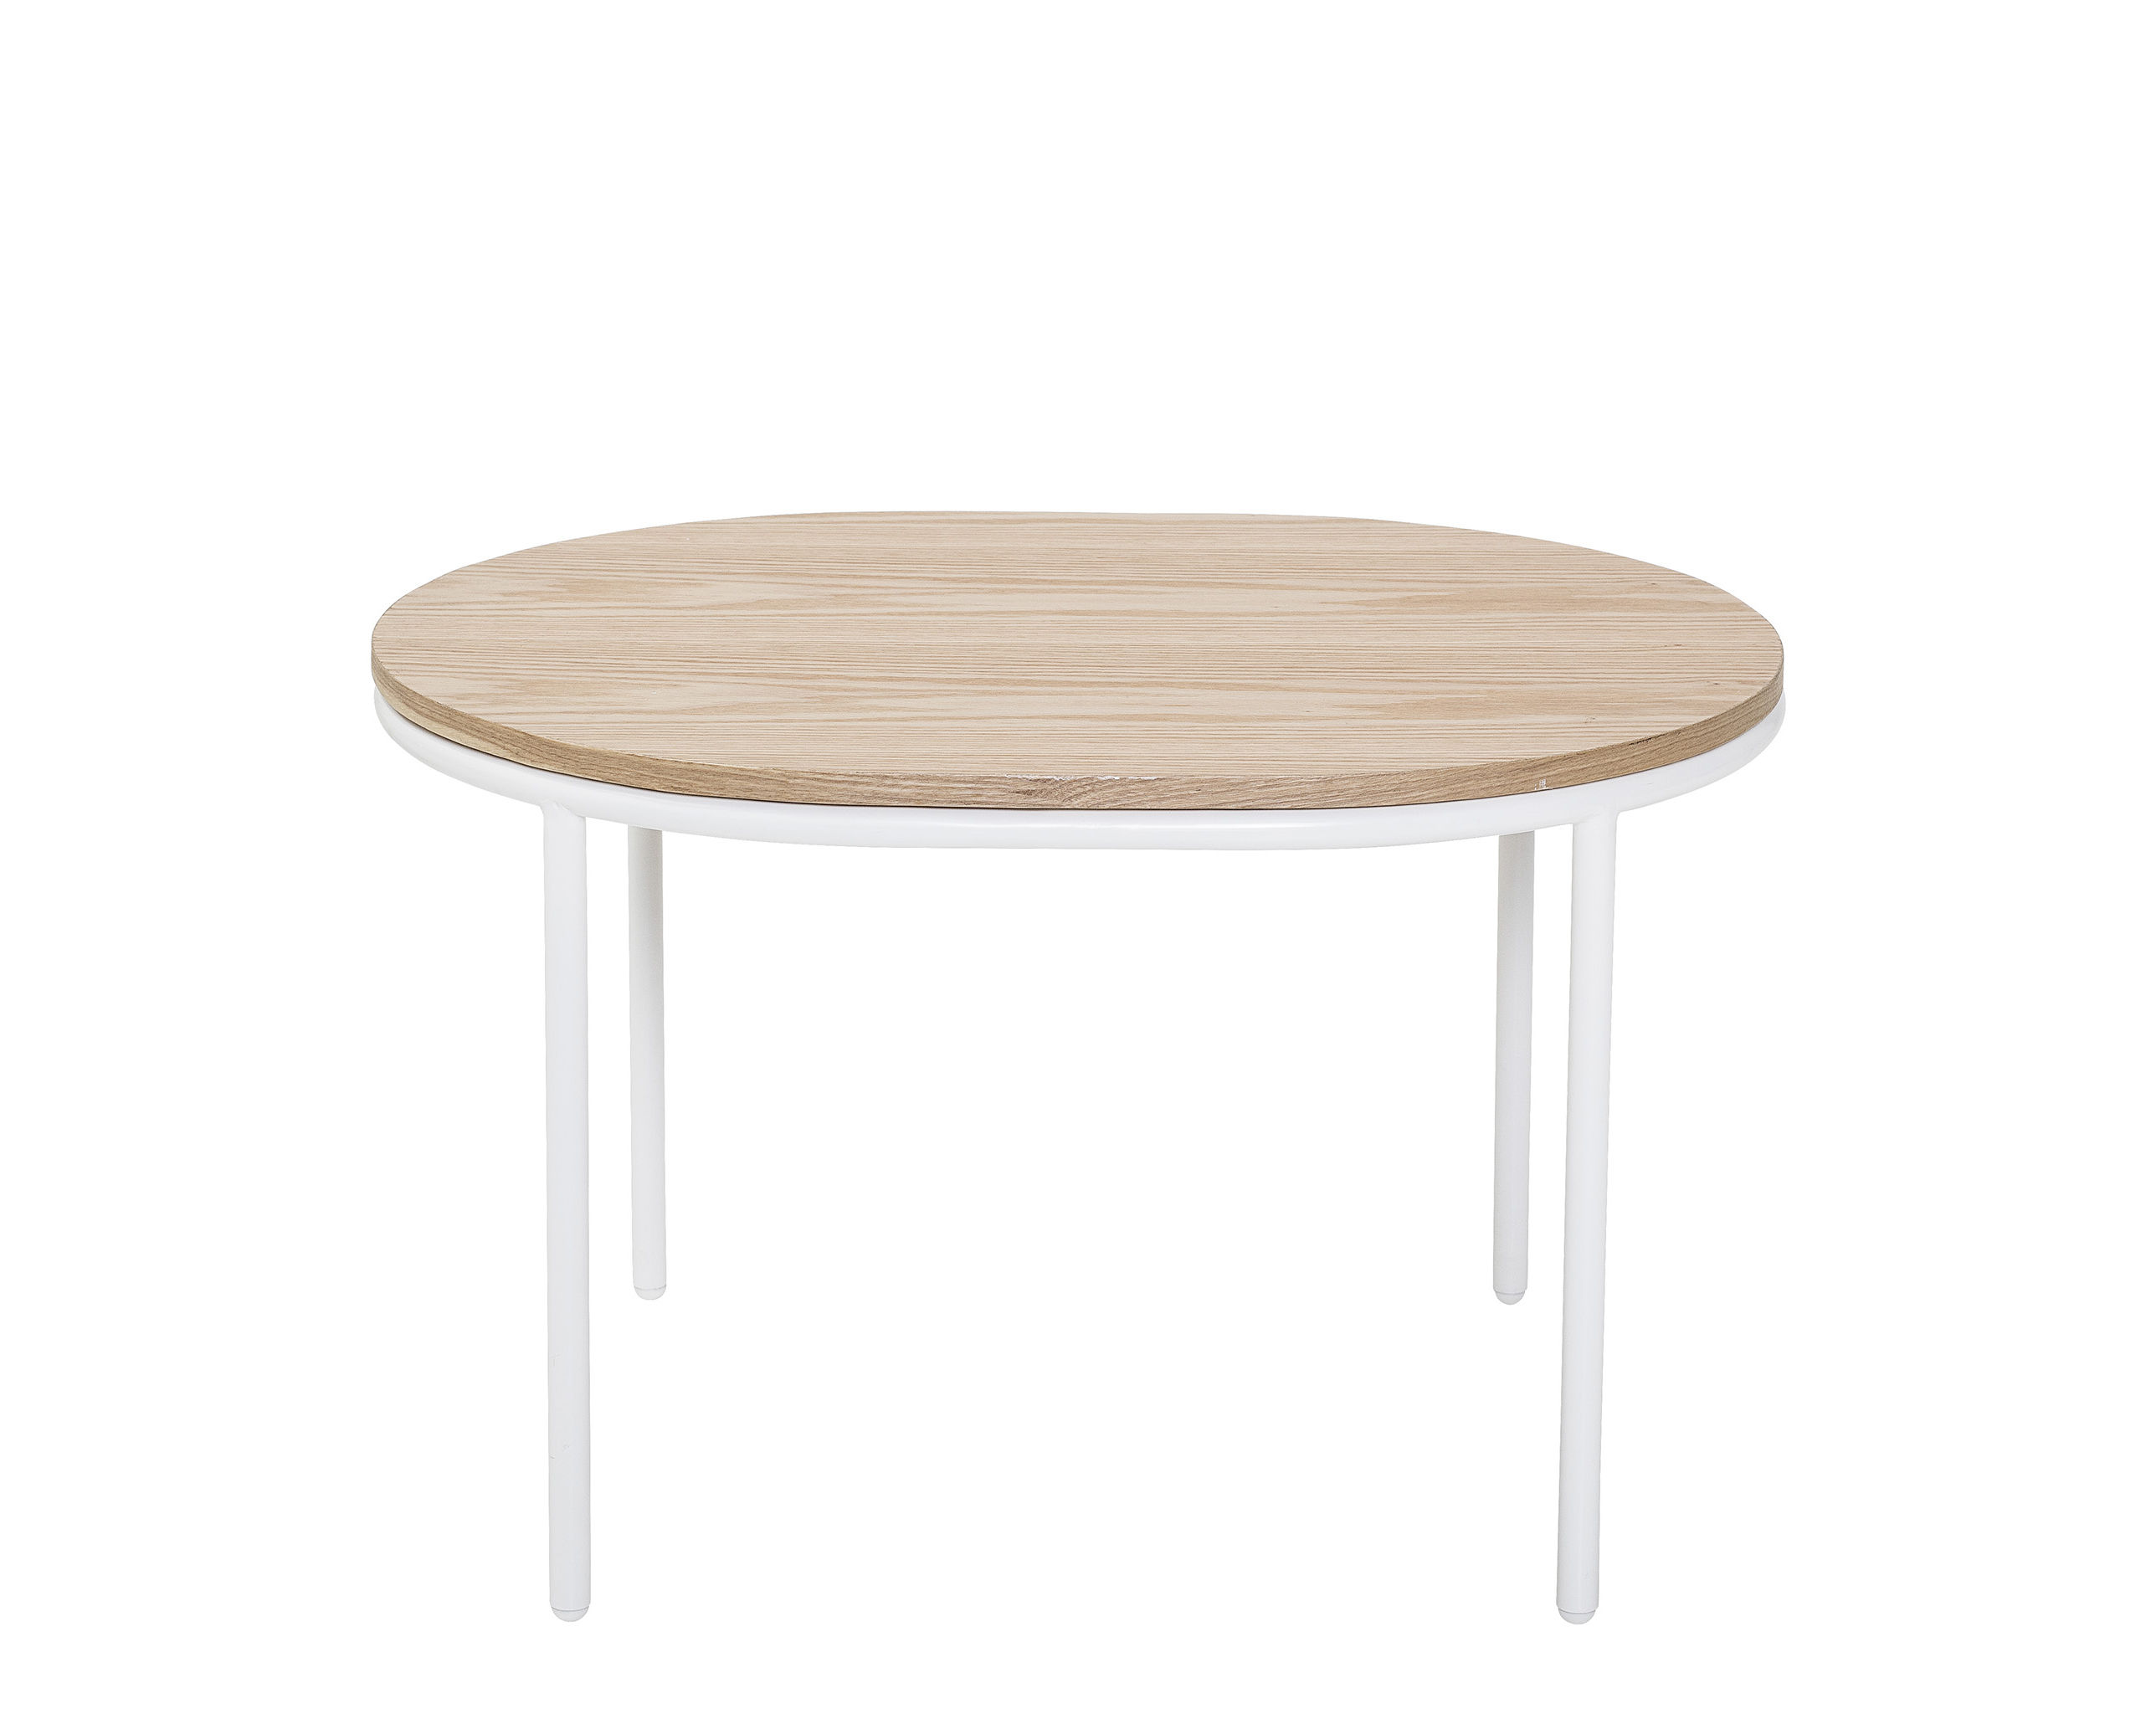 Furniture - Coffee Tables - Coffee table - / Wood - 70 x 55 cm by Bloomingville - Natural oak / White base - Lacquered iron, MDF veneer oak